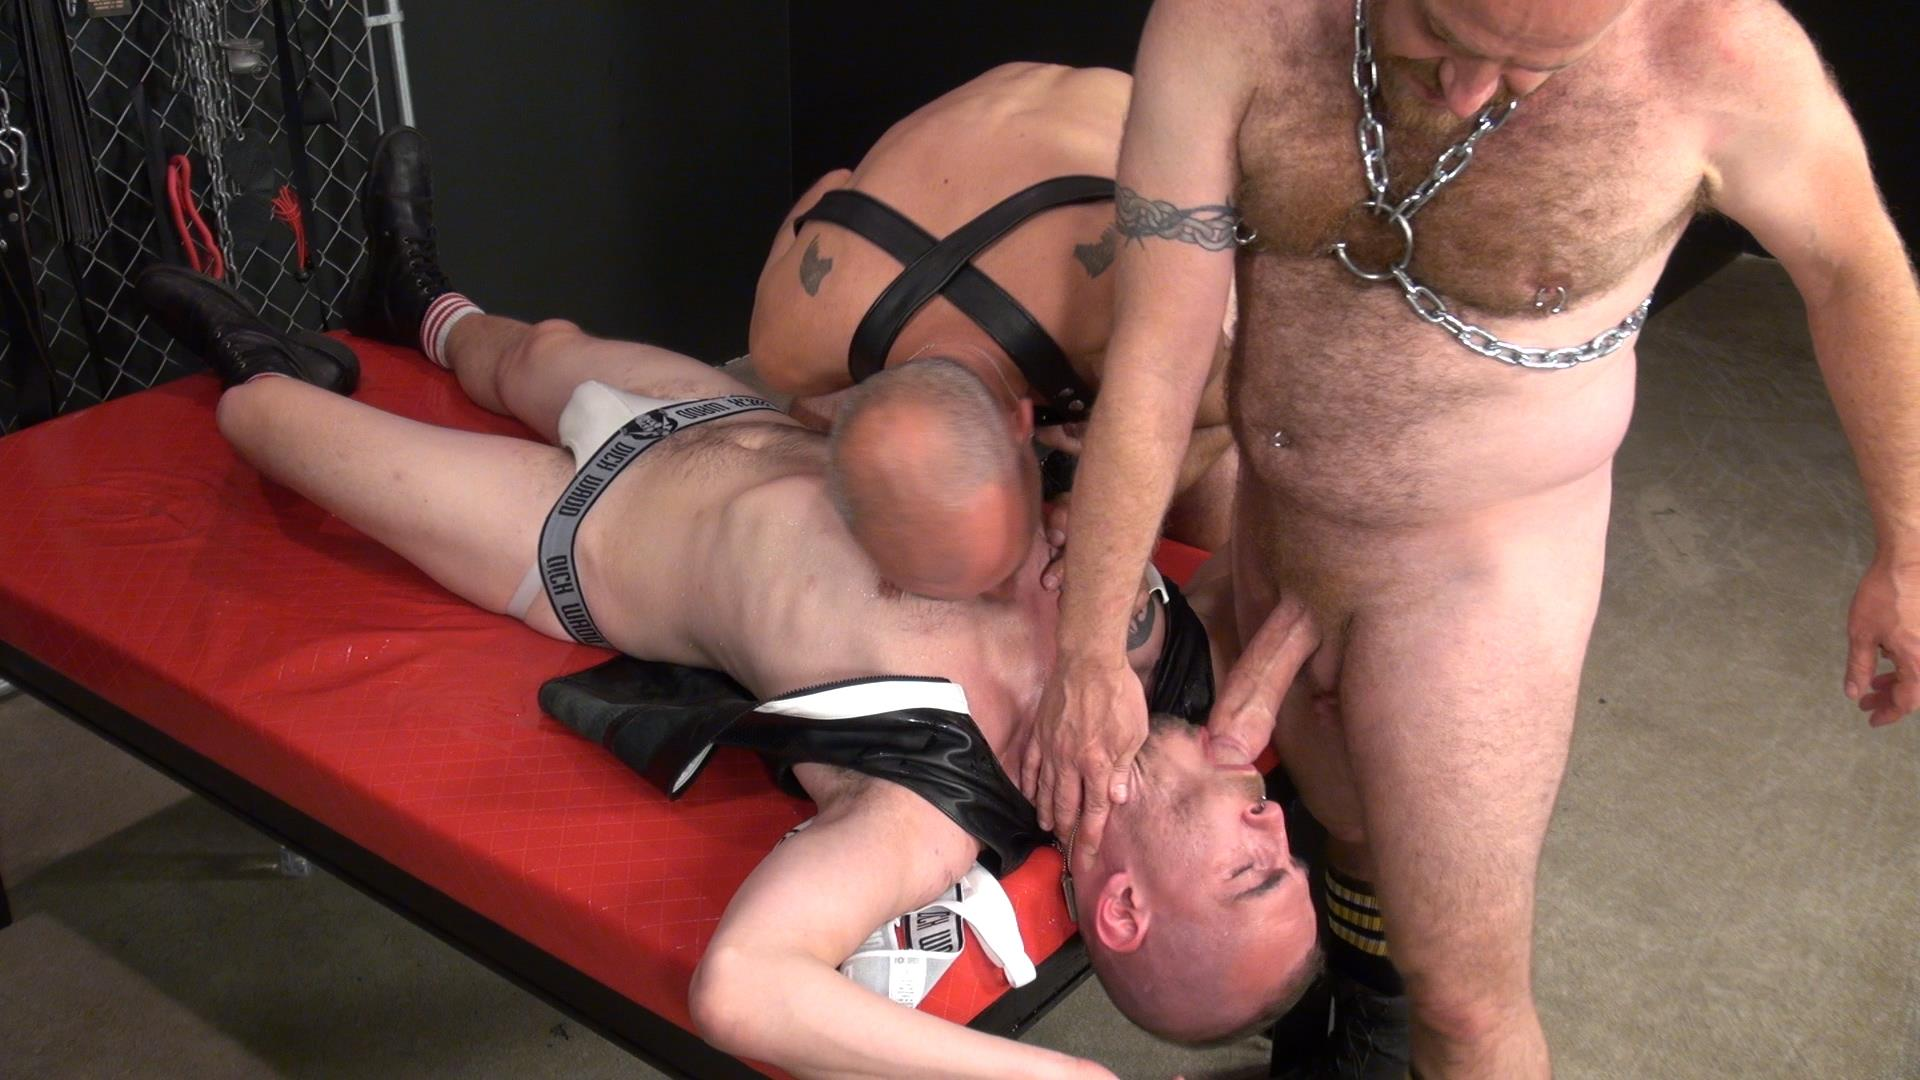 Raw and Rough Nick Roberts and Jason Stormme and Super Steve Bareback Bathhouse Amateur Gay Porn 09 Jason Stormme Gets His Ass Spread Raw With 2 Bareback Cocks